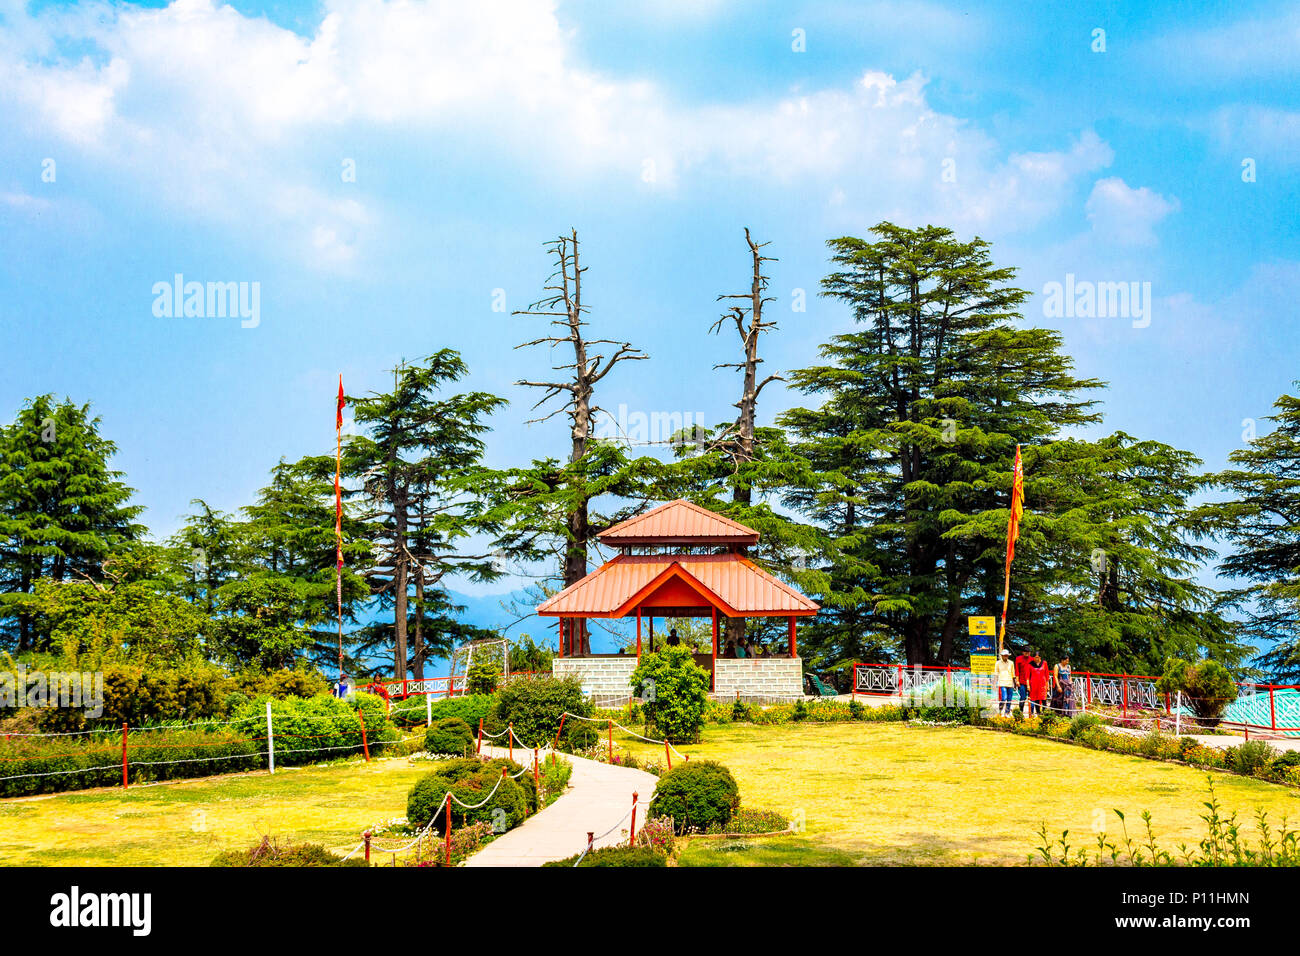 Inside premises of Jakhu temple in Shimla, Himachal Pradesh, India. - Stock Image